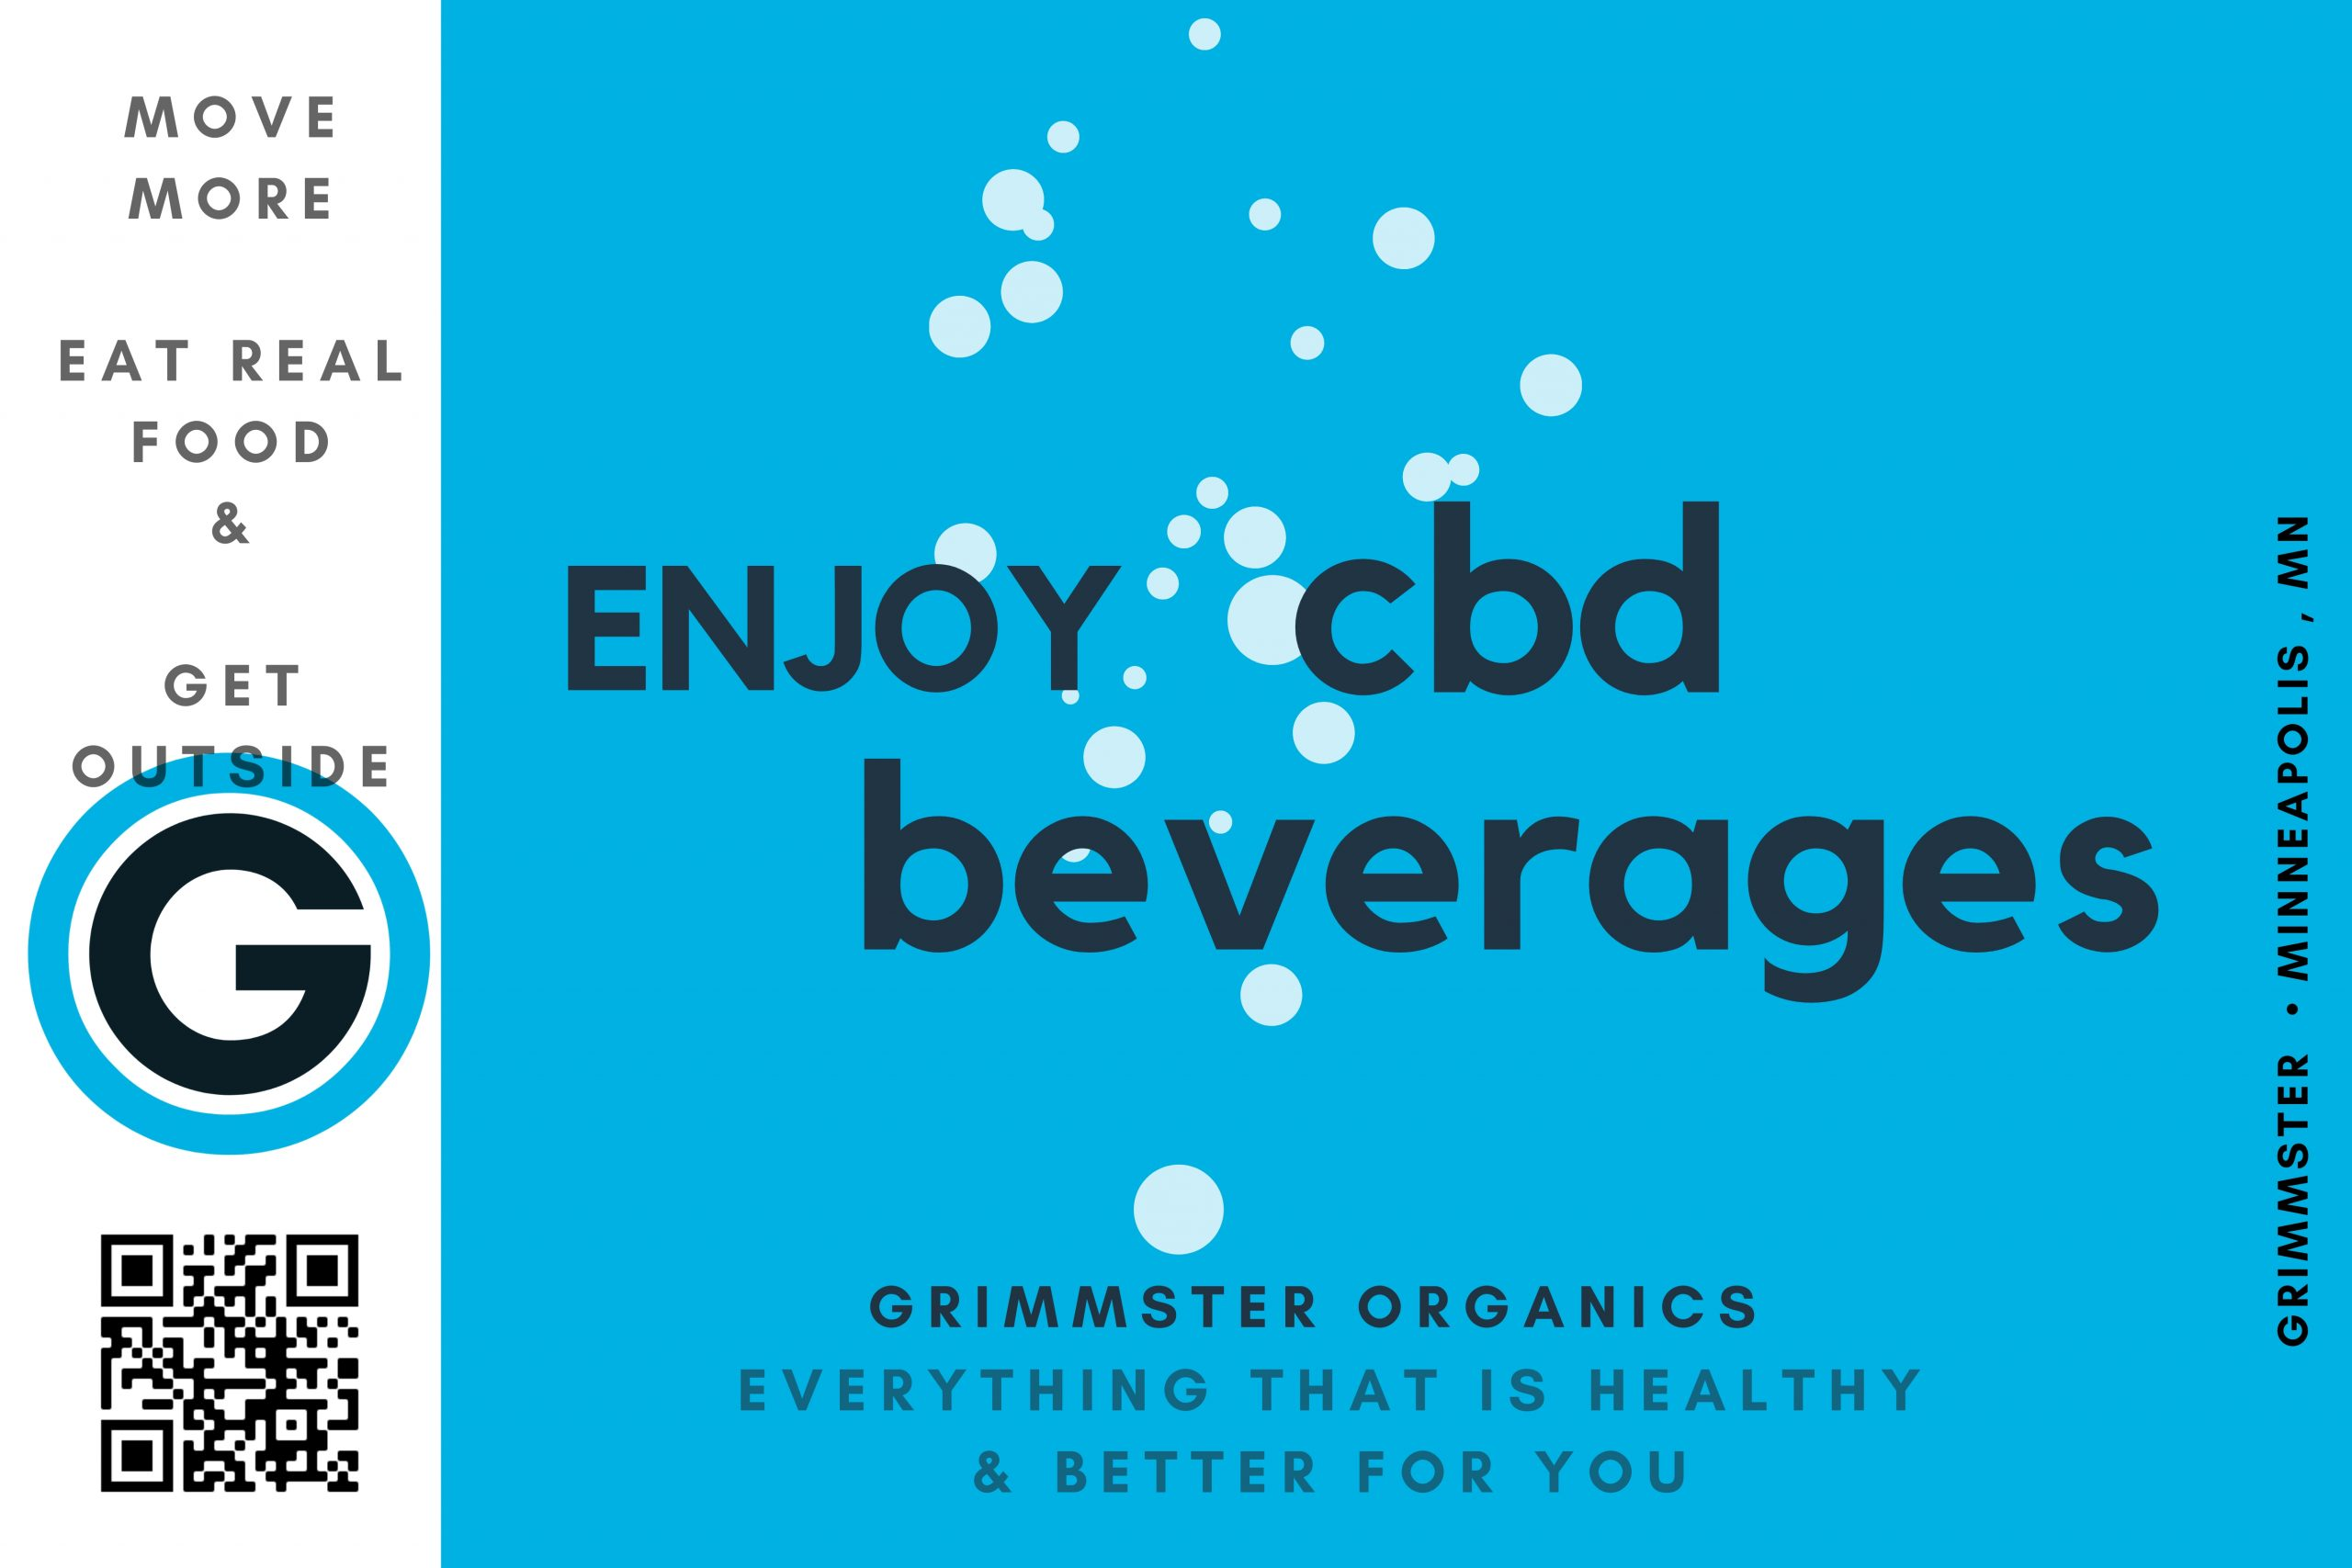 CBD beverages and CBD Oil - Grimmster Organics